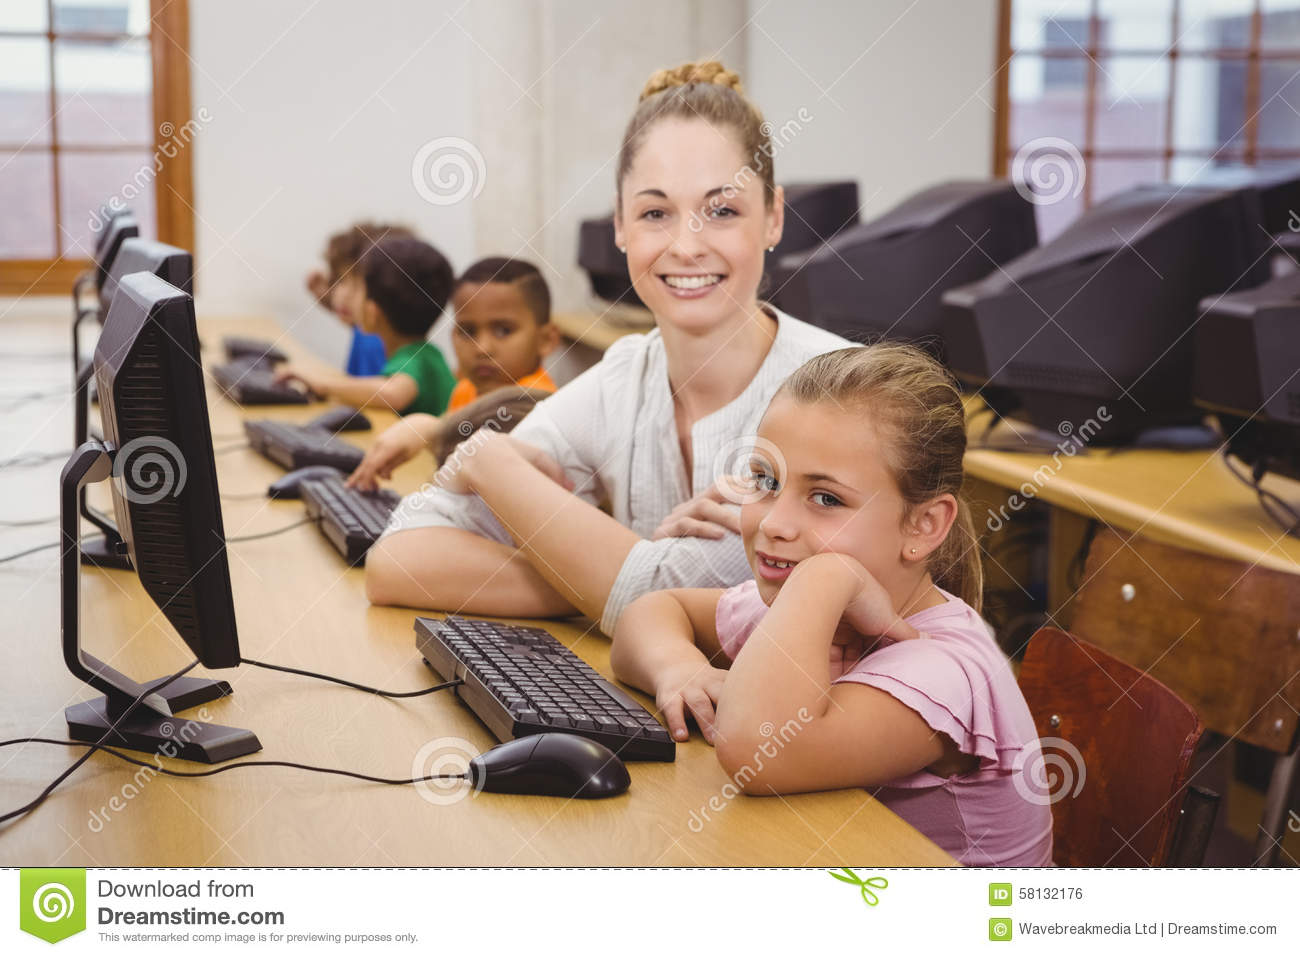 Teacher Helping A Student Using A Computer Stock Photo - Image of